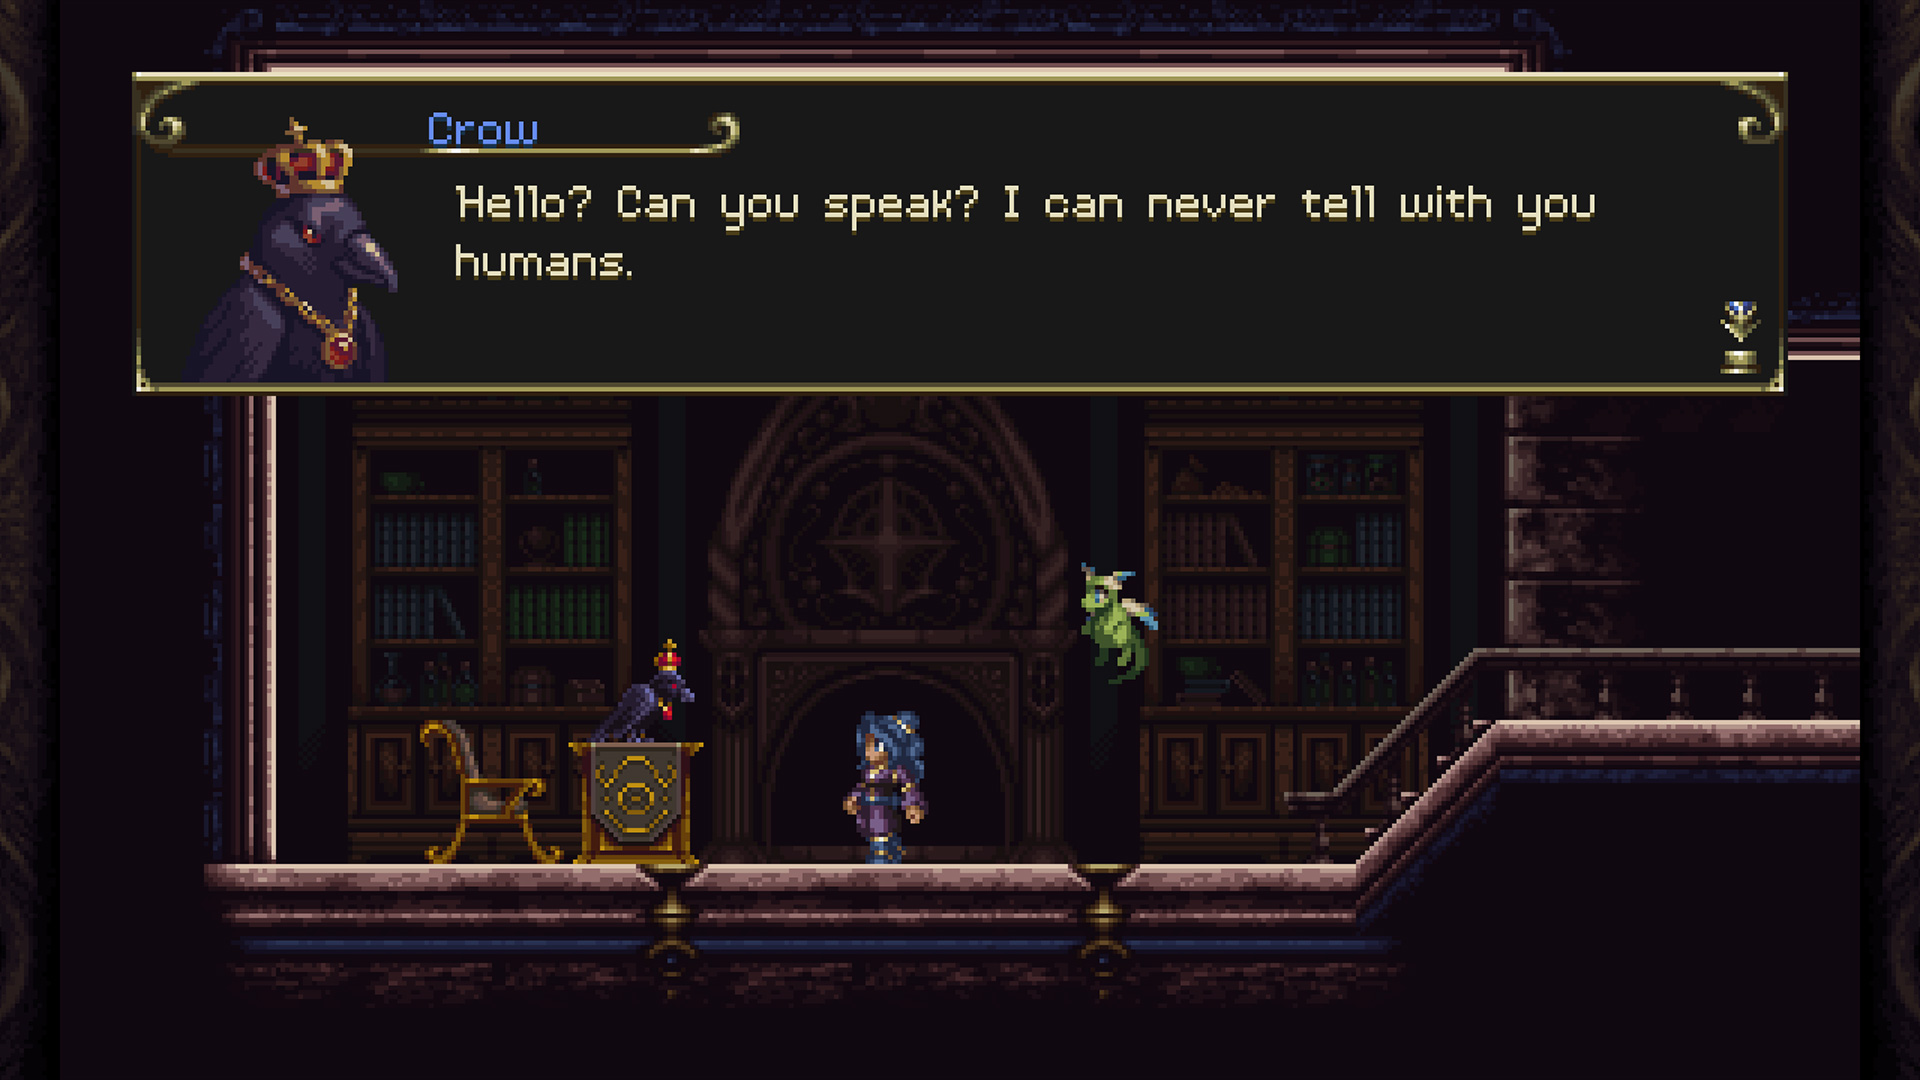 2D, Action, adventure, Chucklefish, indie, Lunar Ray Games, Metroidvania, Platformer, PS4, PS4 Review, Rating 8/10, Role Playing Game, RPG, Timespinner